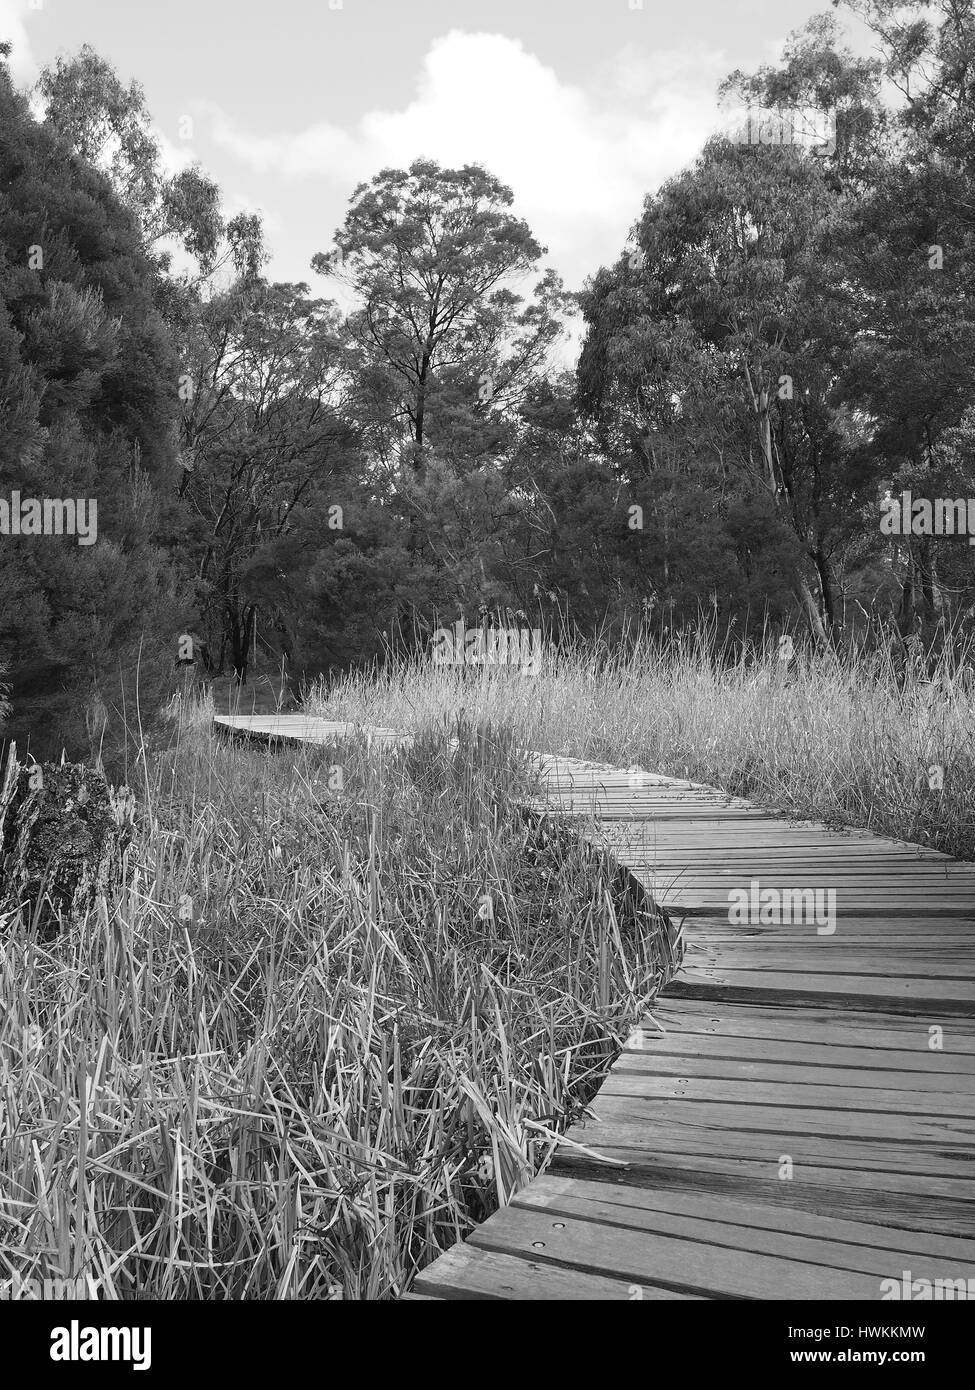 Timber board walk along a rural creek through bush and wetland in the late afternoon sun, Victoria, Australia 2016 - Stock Image